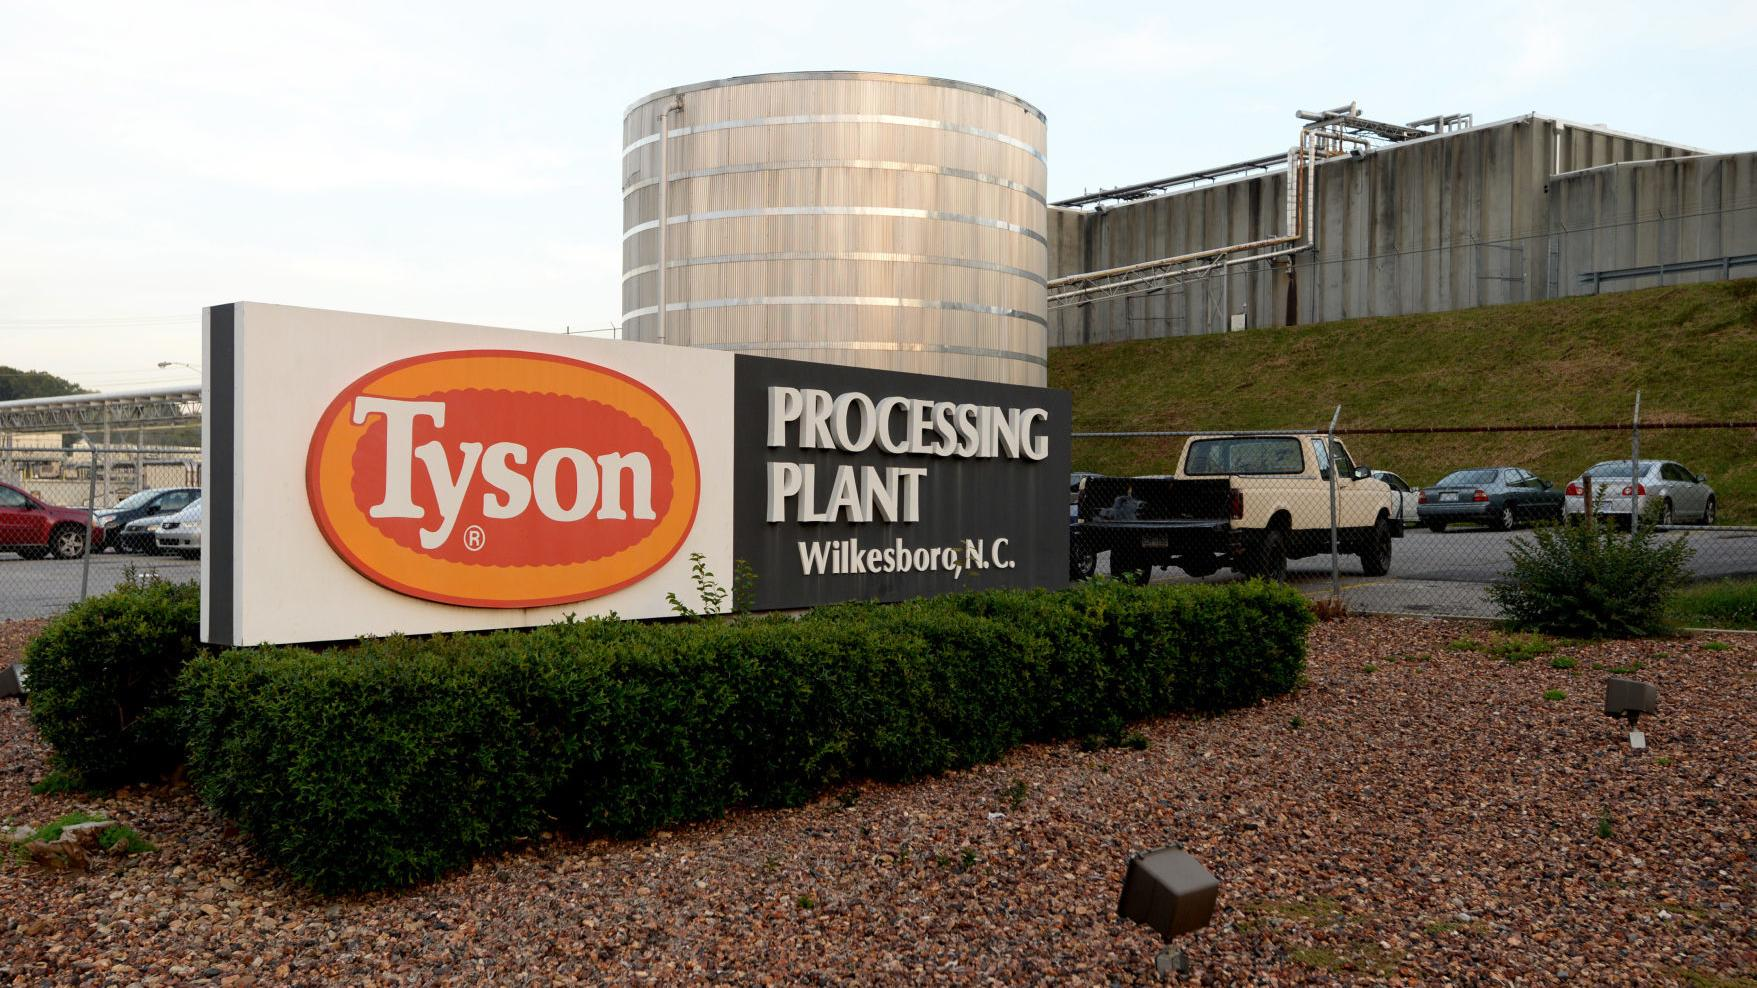 Tyson plant that had major COVID-19 outbreak works with clinic to get health care nearby